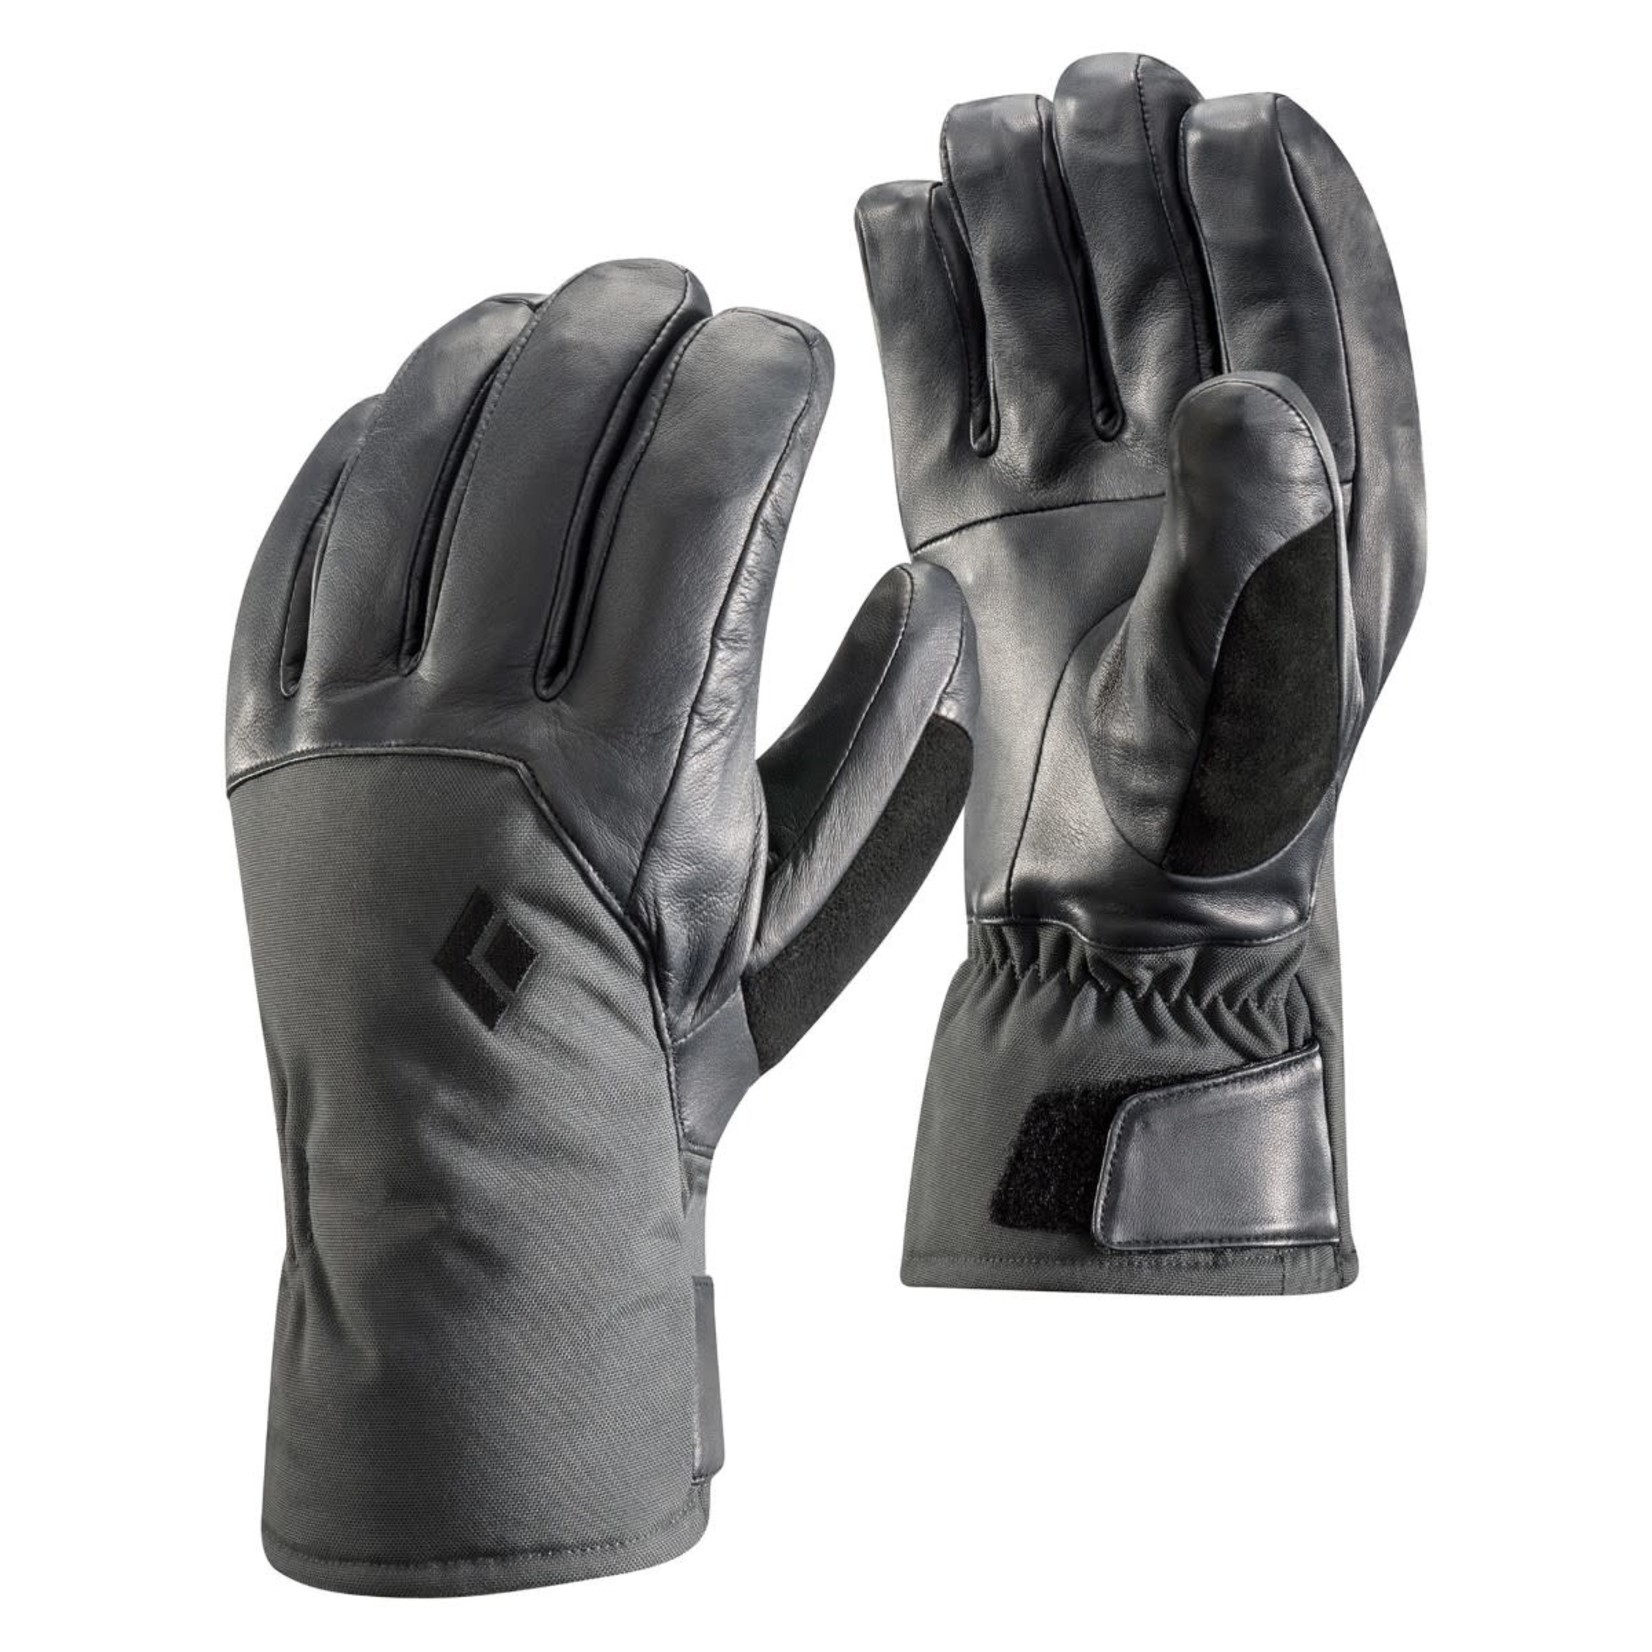 Black Diamond Black Diamond Legend Gloves - Unisex